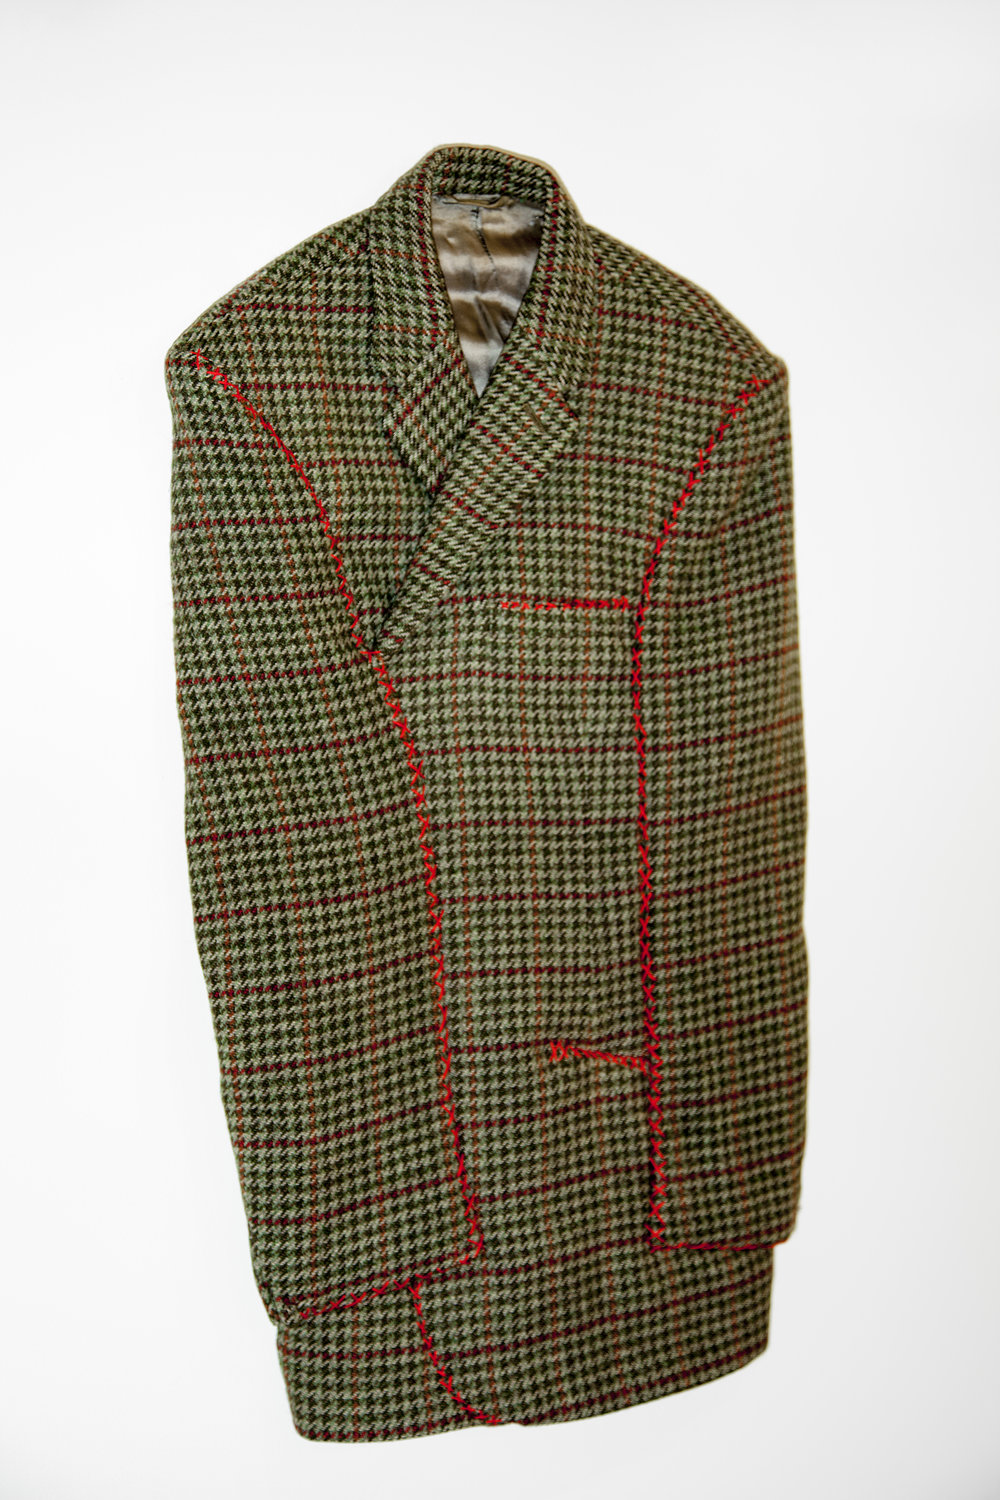 A Person Who Is Not A Cowboy,  2015, Houndstooth jacket, cotton thread 36 x 12 x 2.5